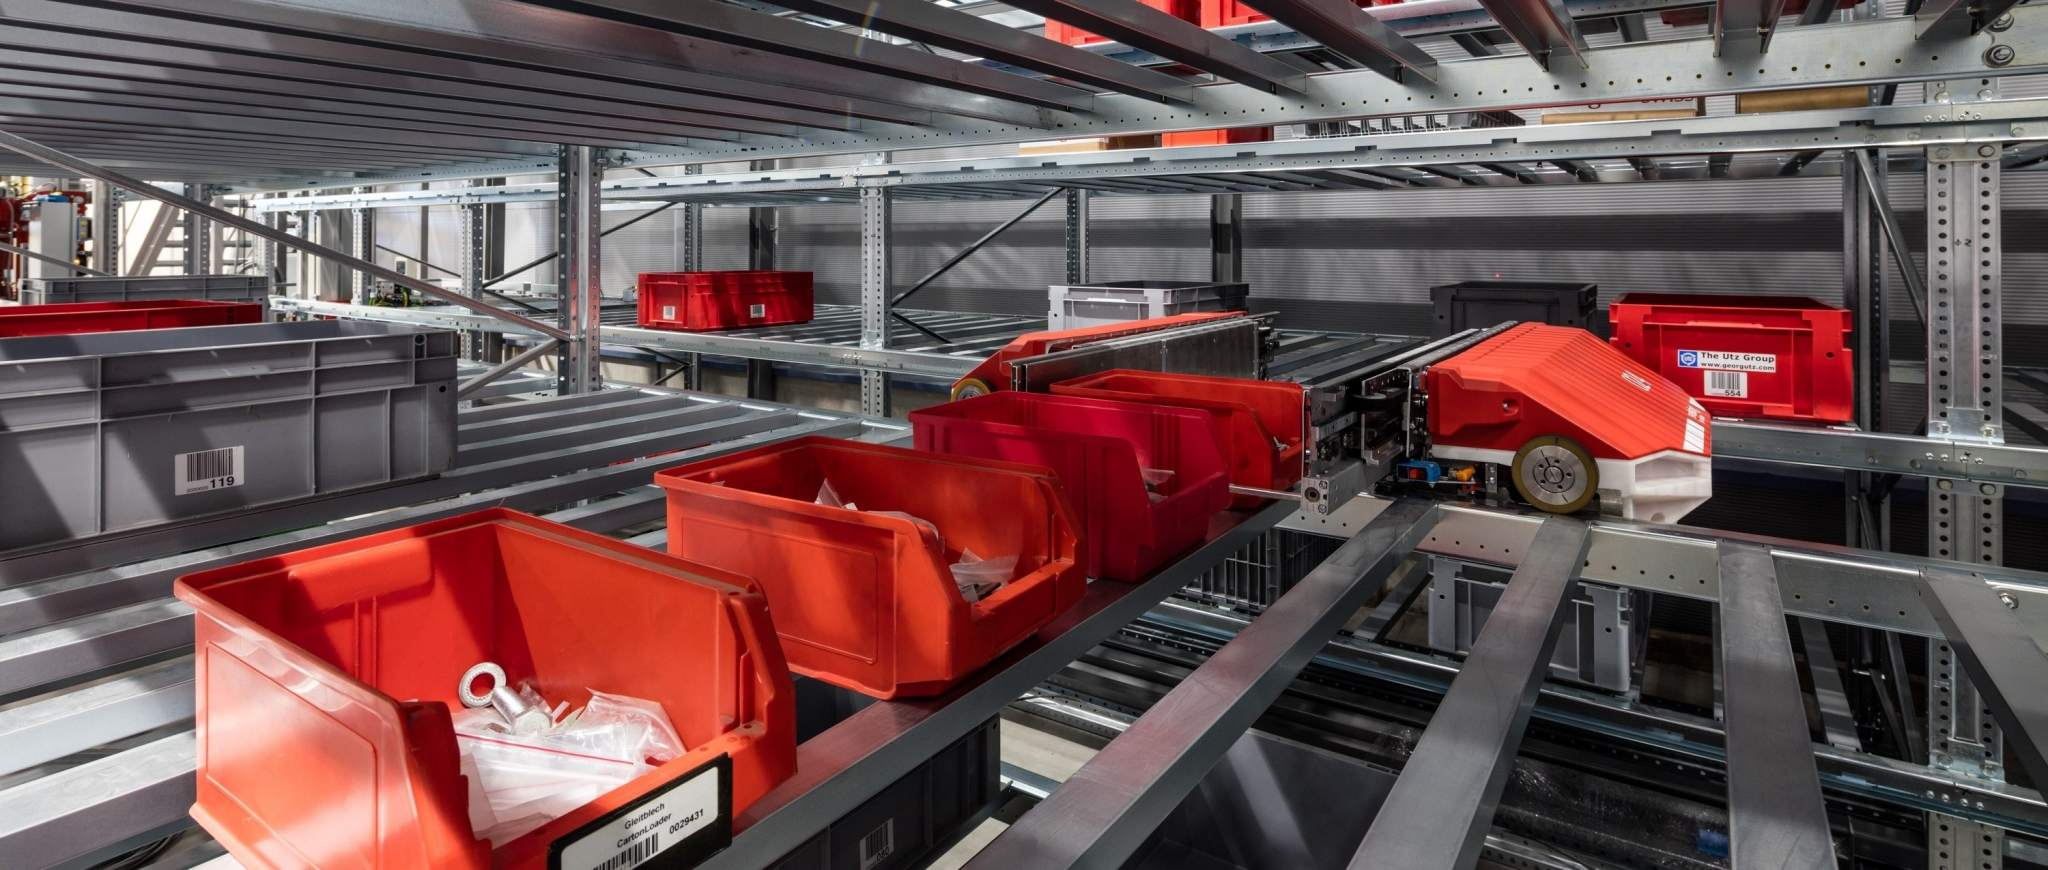 Swisslog's warehouse and distribution solutions. Image via Swisslog.